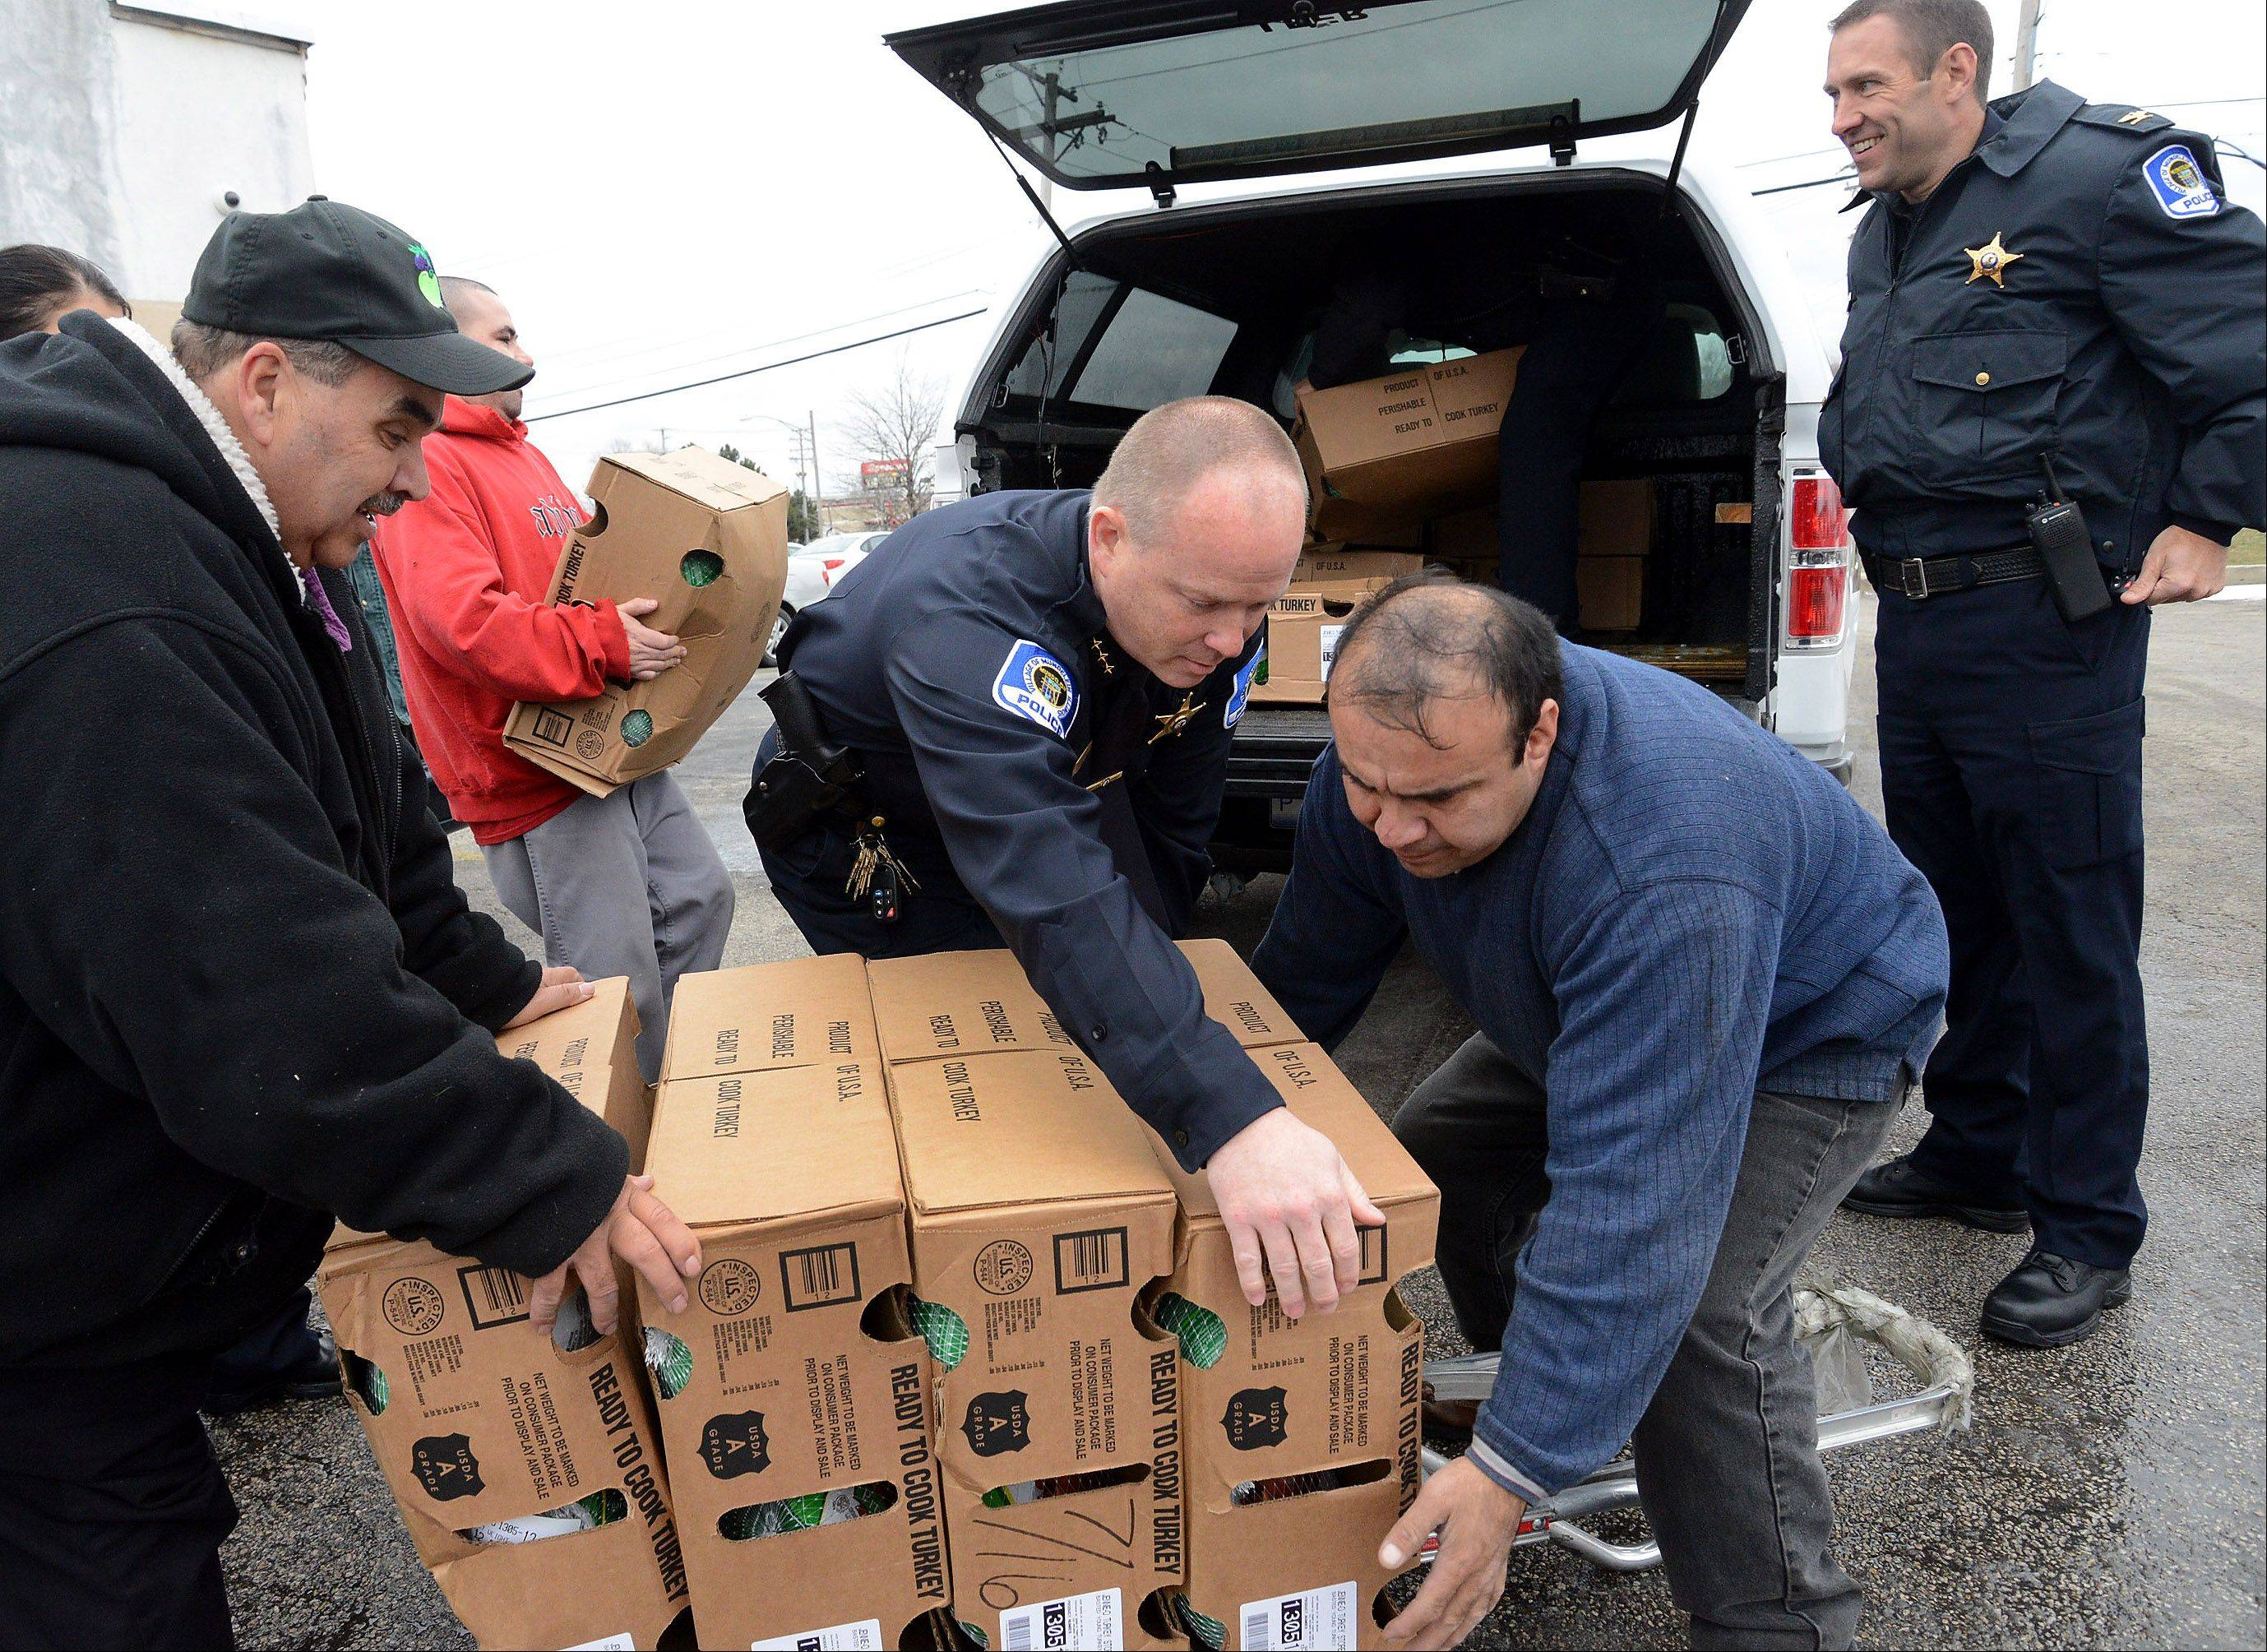 Mundelein Police Chief Eric Guenther, center, helps load up a police vehicle with turkeys on Tuesday for delivery to local families in need. This is the 13th year the Mundelein Police Department and Elly's Pancake House teamed up to provide Thanksgiving meals to needy families in the community.